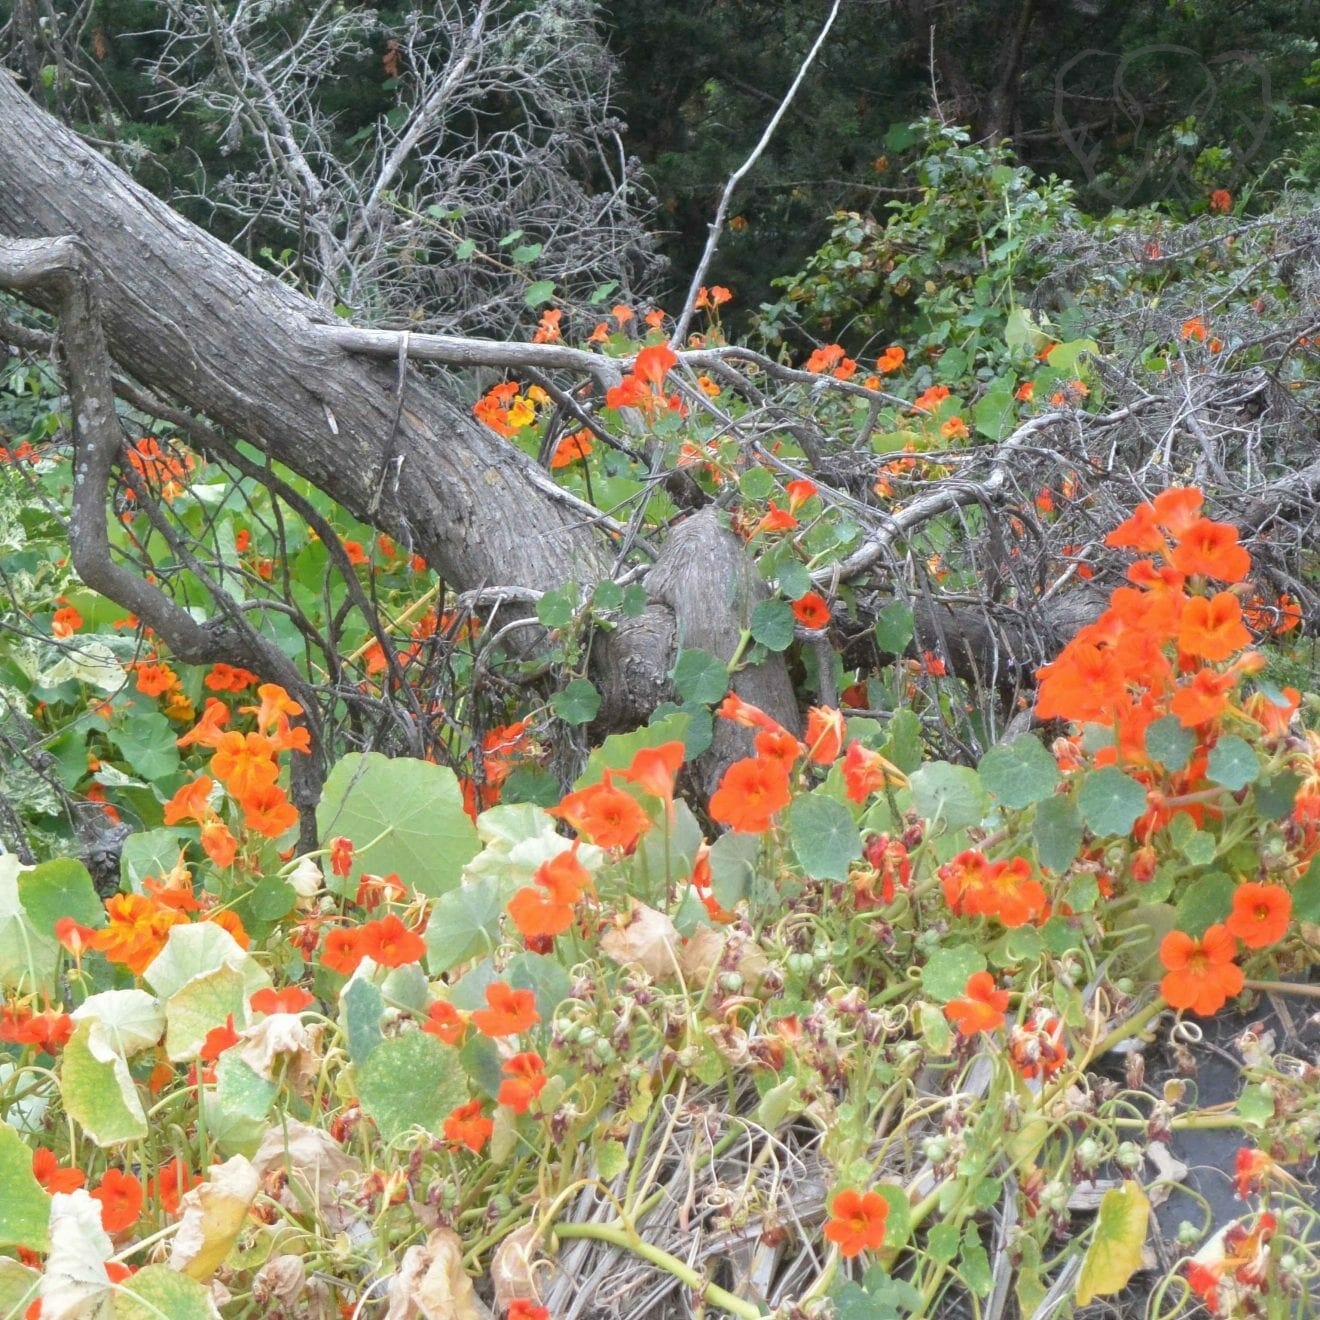 Nasturtium flowers in Big Sur, California (Miranda Hernandez)